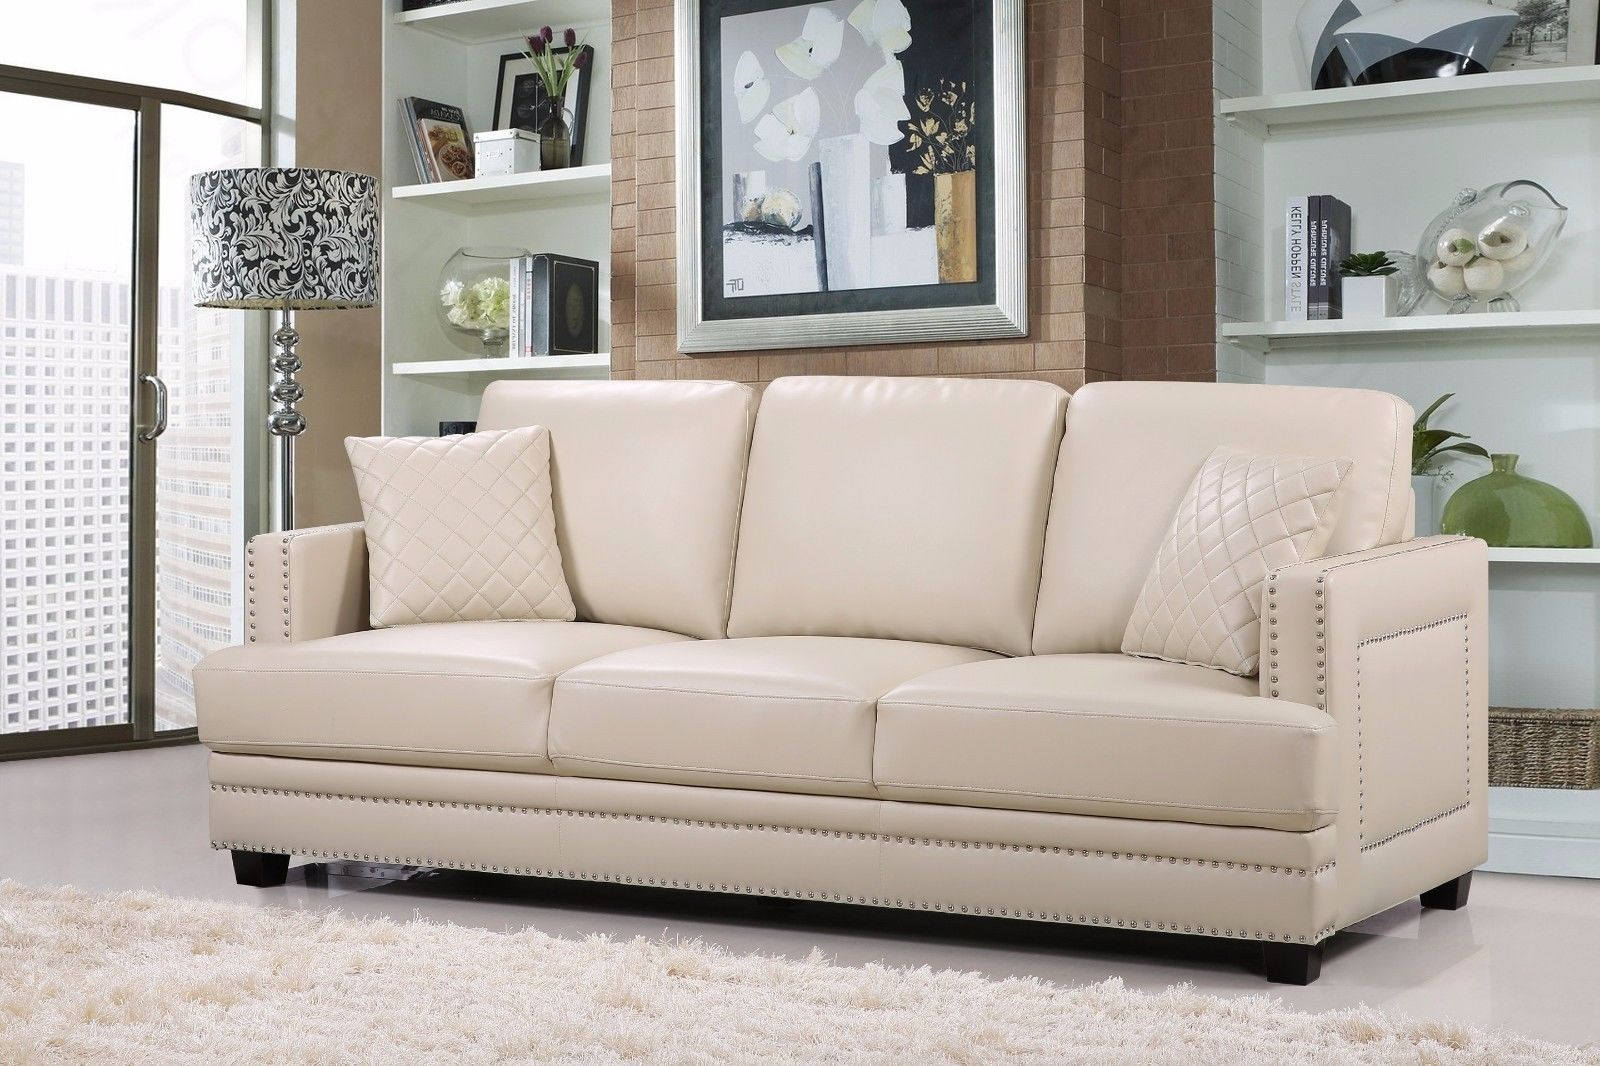 Meridian 655 Bonded Leather Living Room Sofa Set 3pc. Beige Contemporary Style